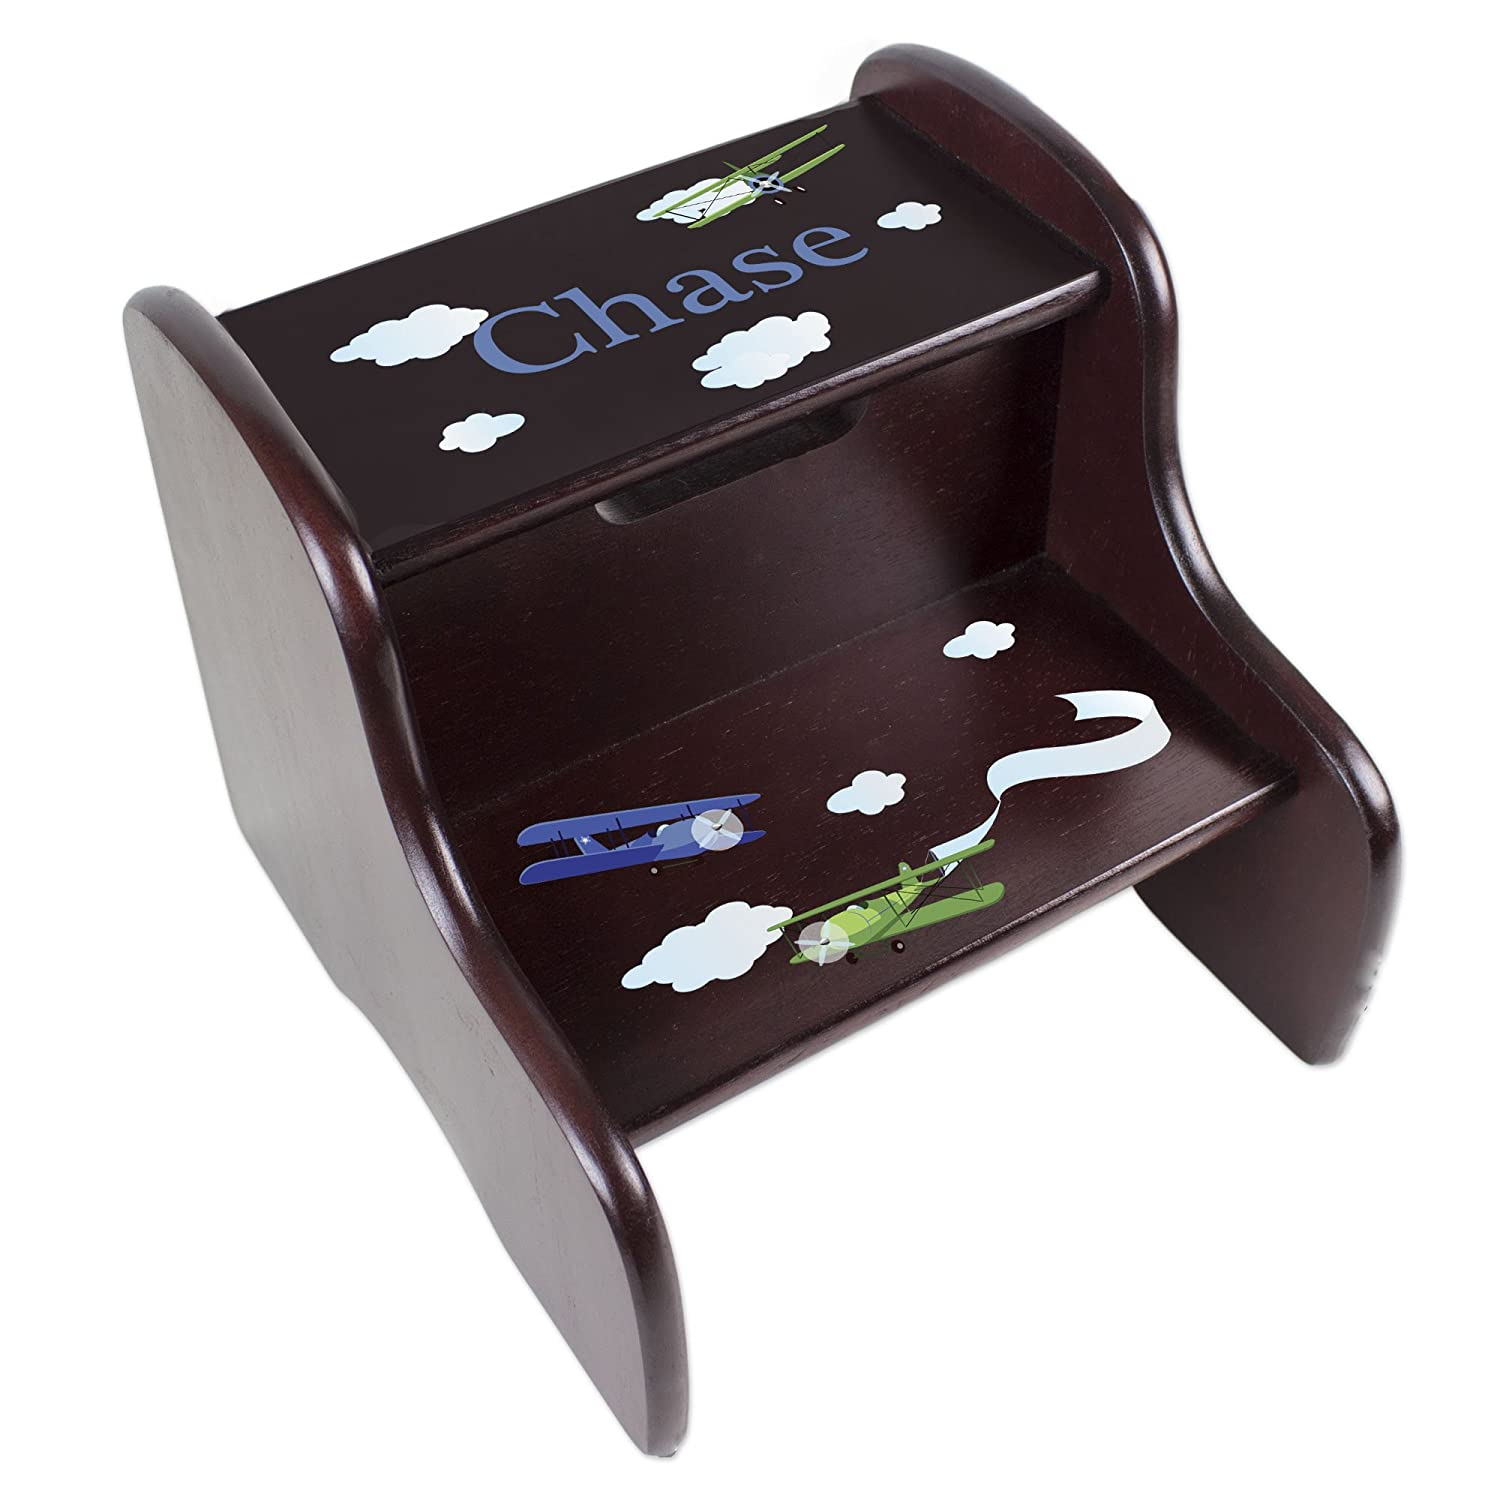 Personalized Boys Airplane Espresso Step Stool MyBambino FIXE-esp-204